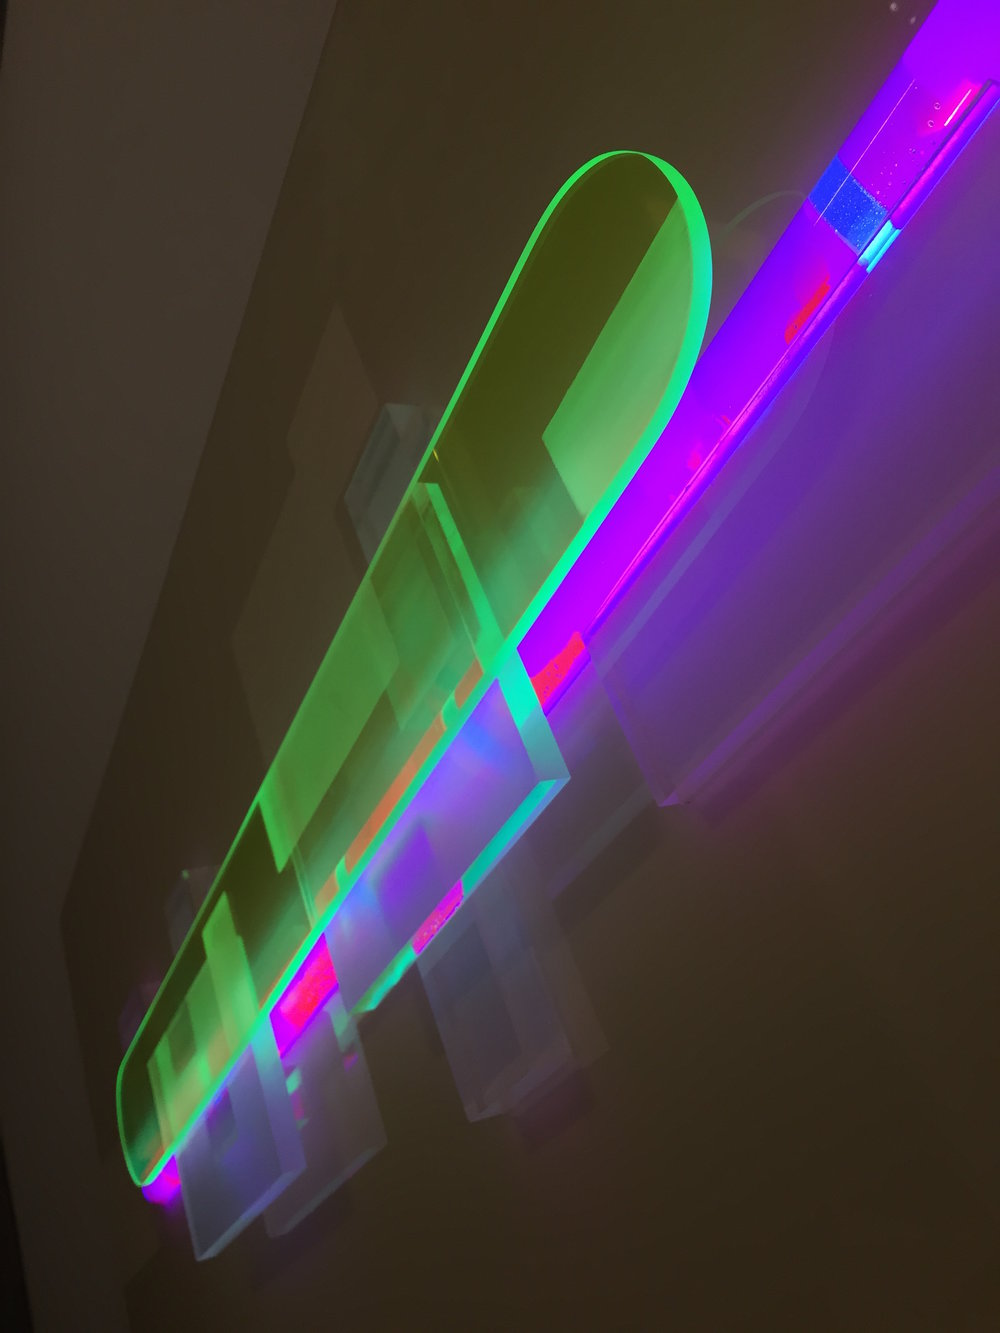 Light sculpture made of resin, acrylic, wood, and LED, with green, orange and purple colors entitled Beacon 4 Night.